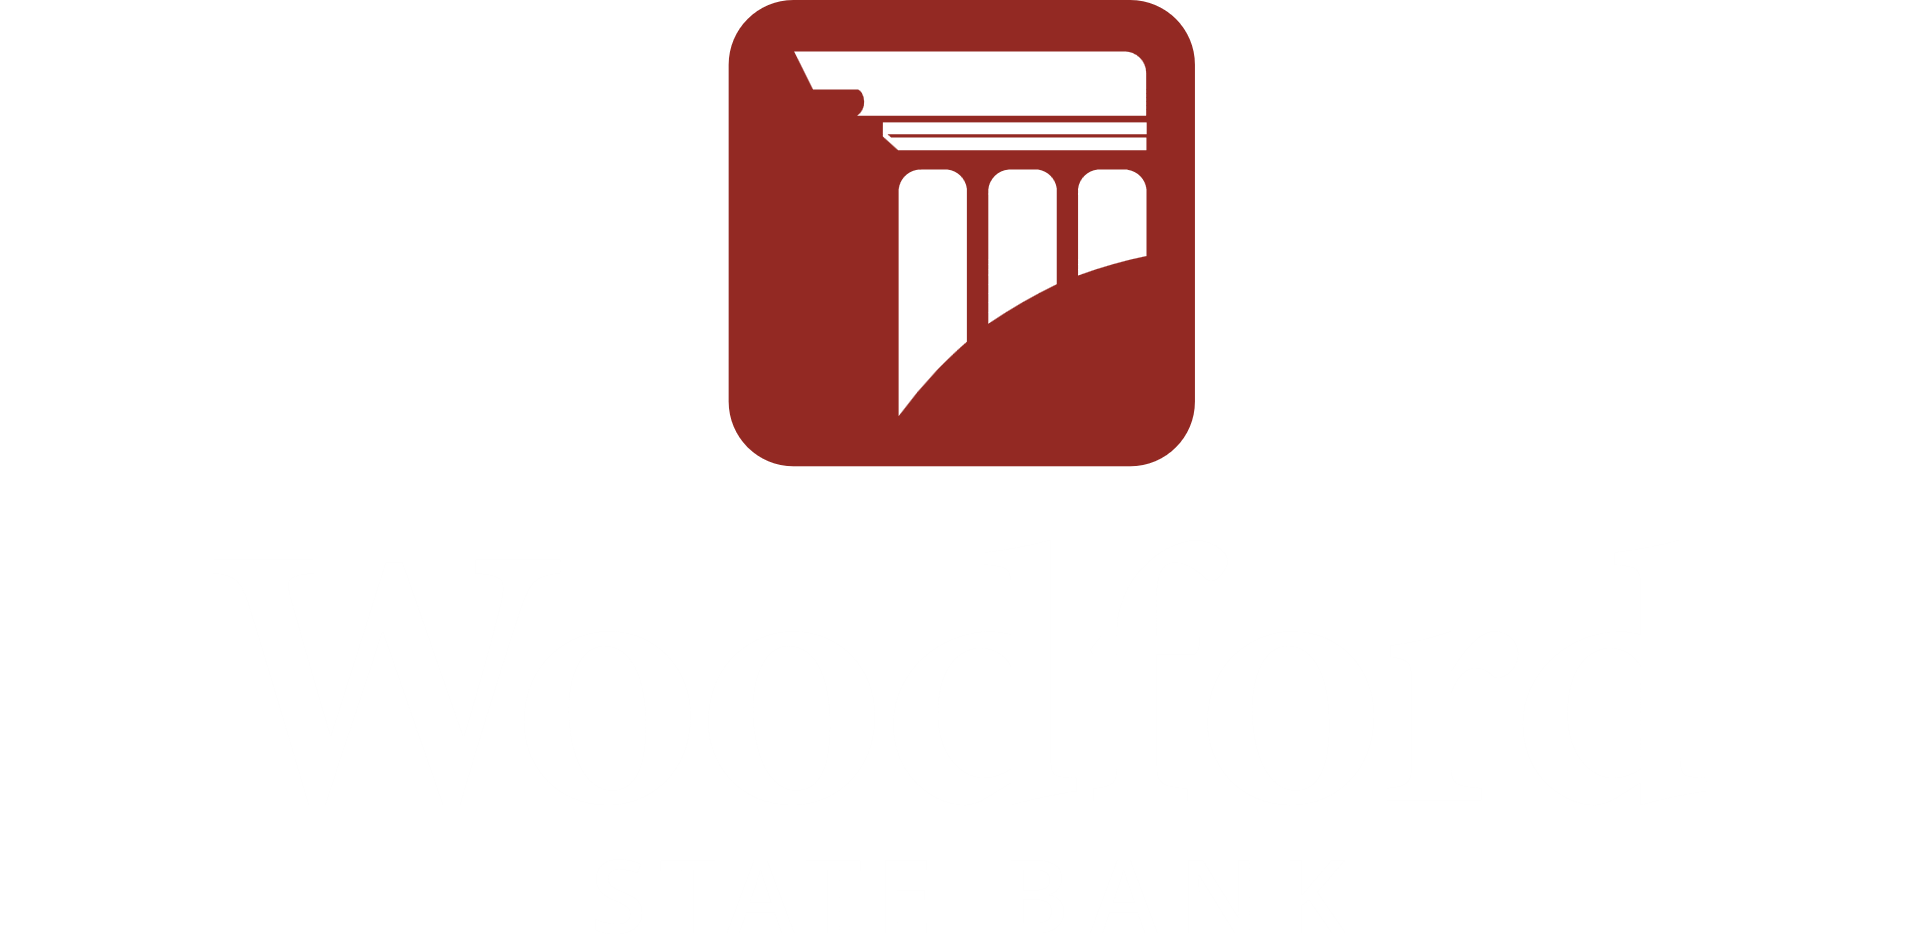 Woodford State Bank